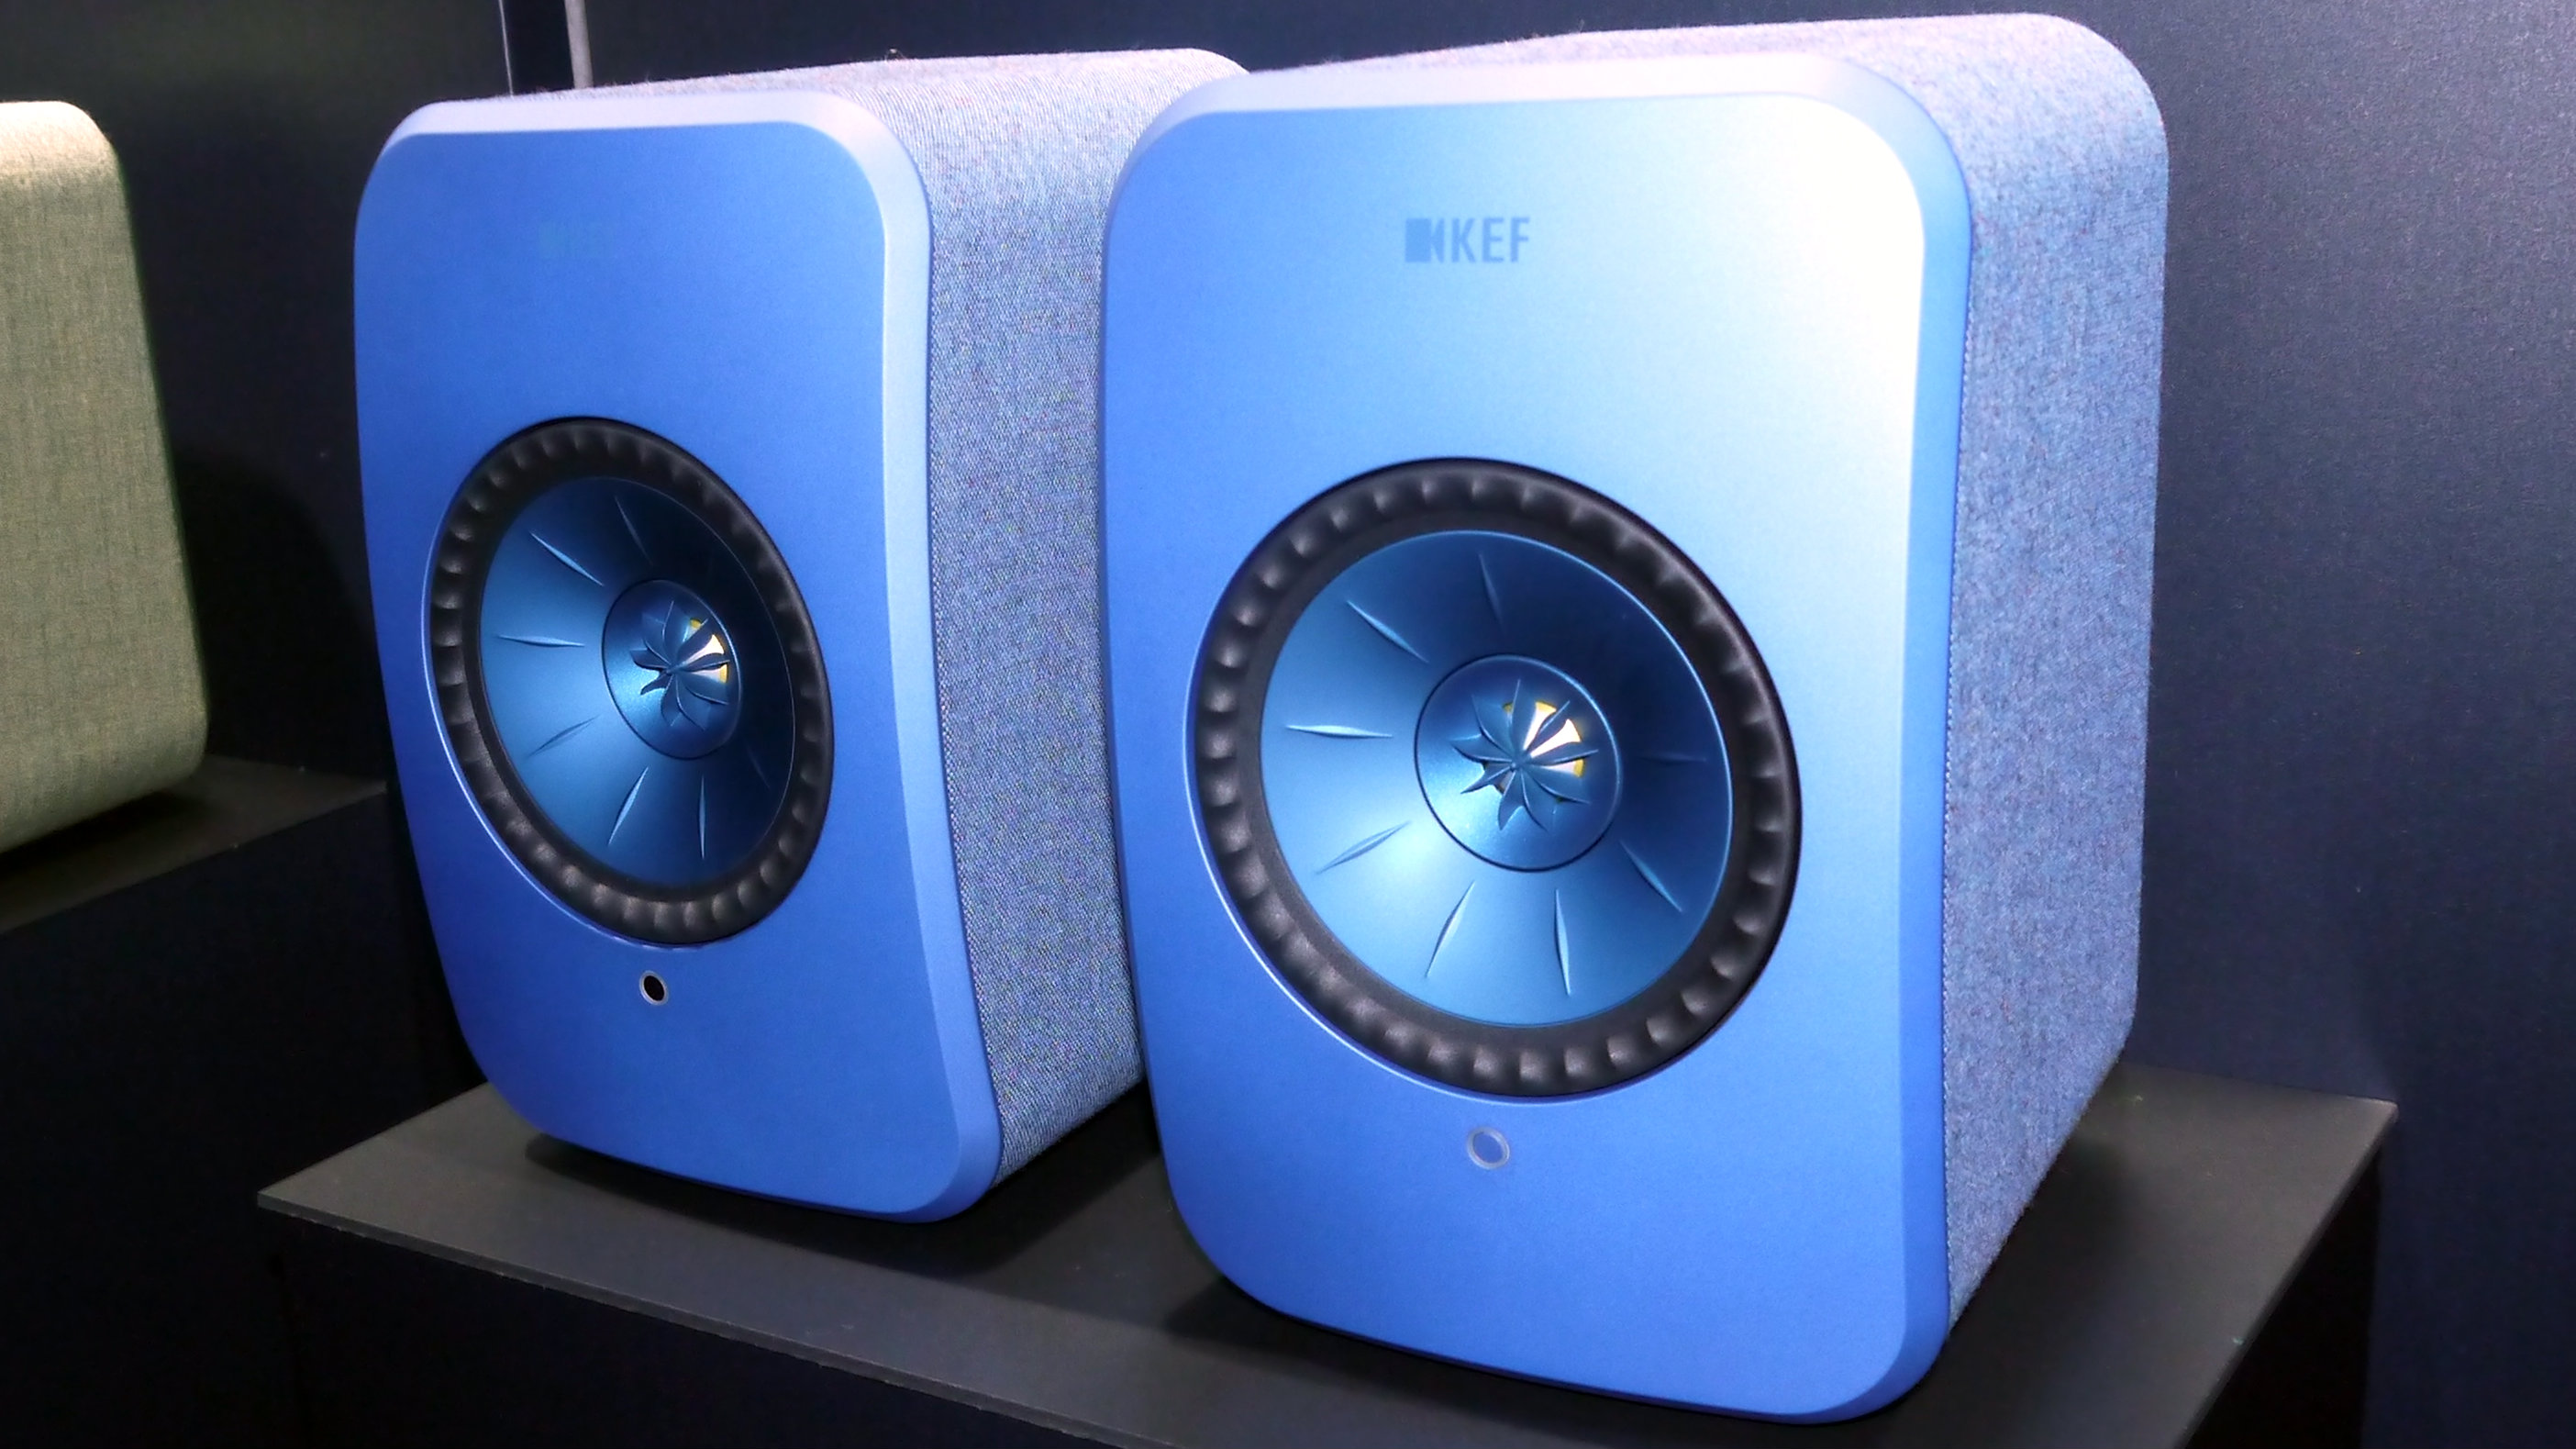 KEF launches the LSX Wireless Music System for hi-res stereo sound